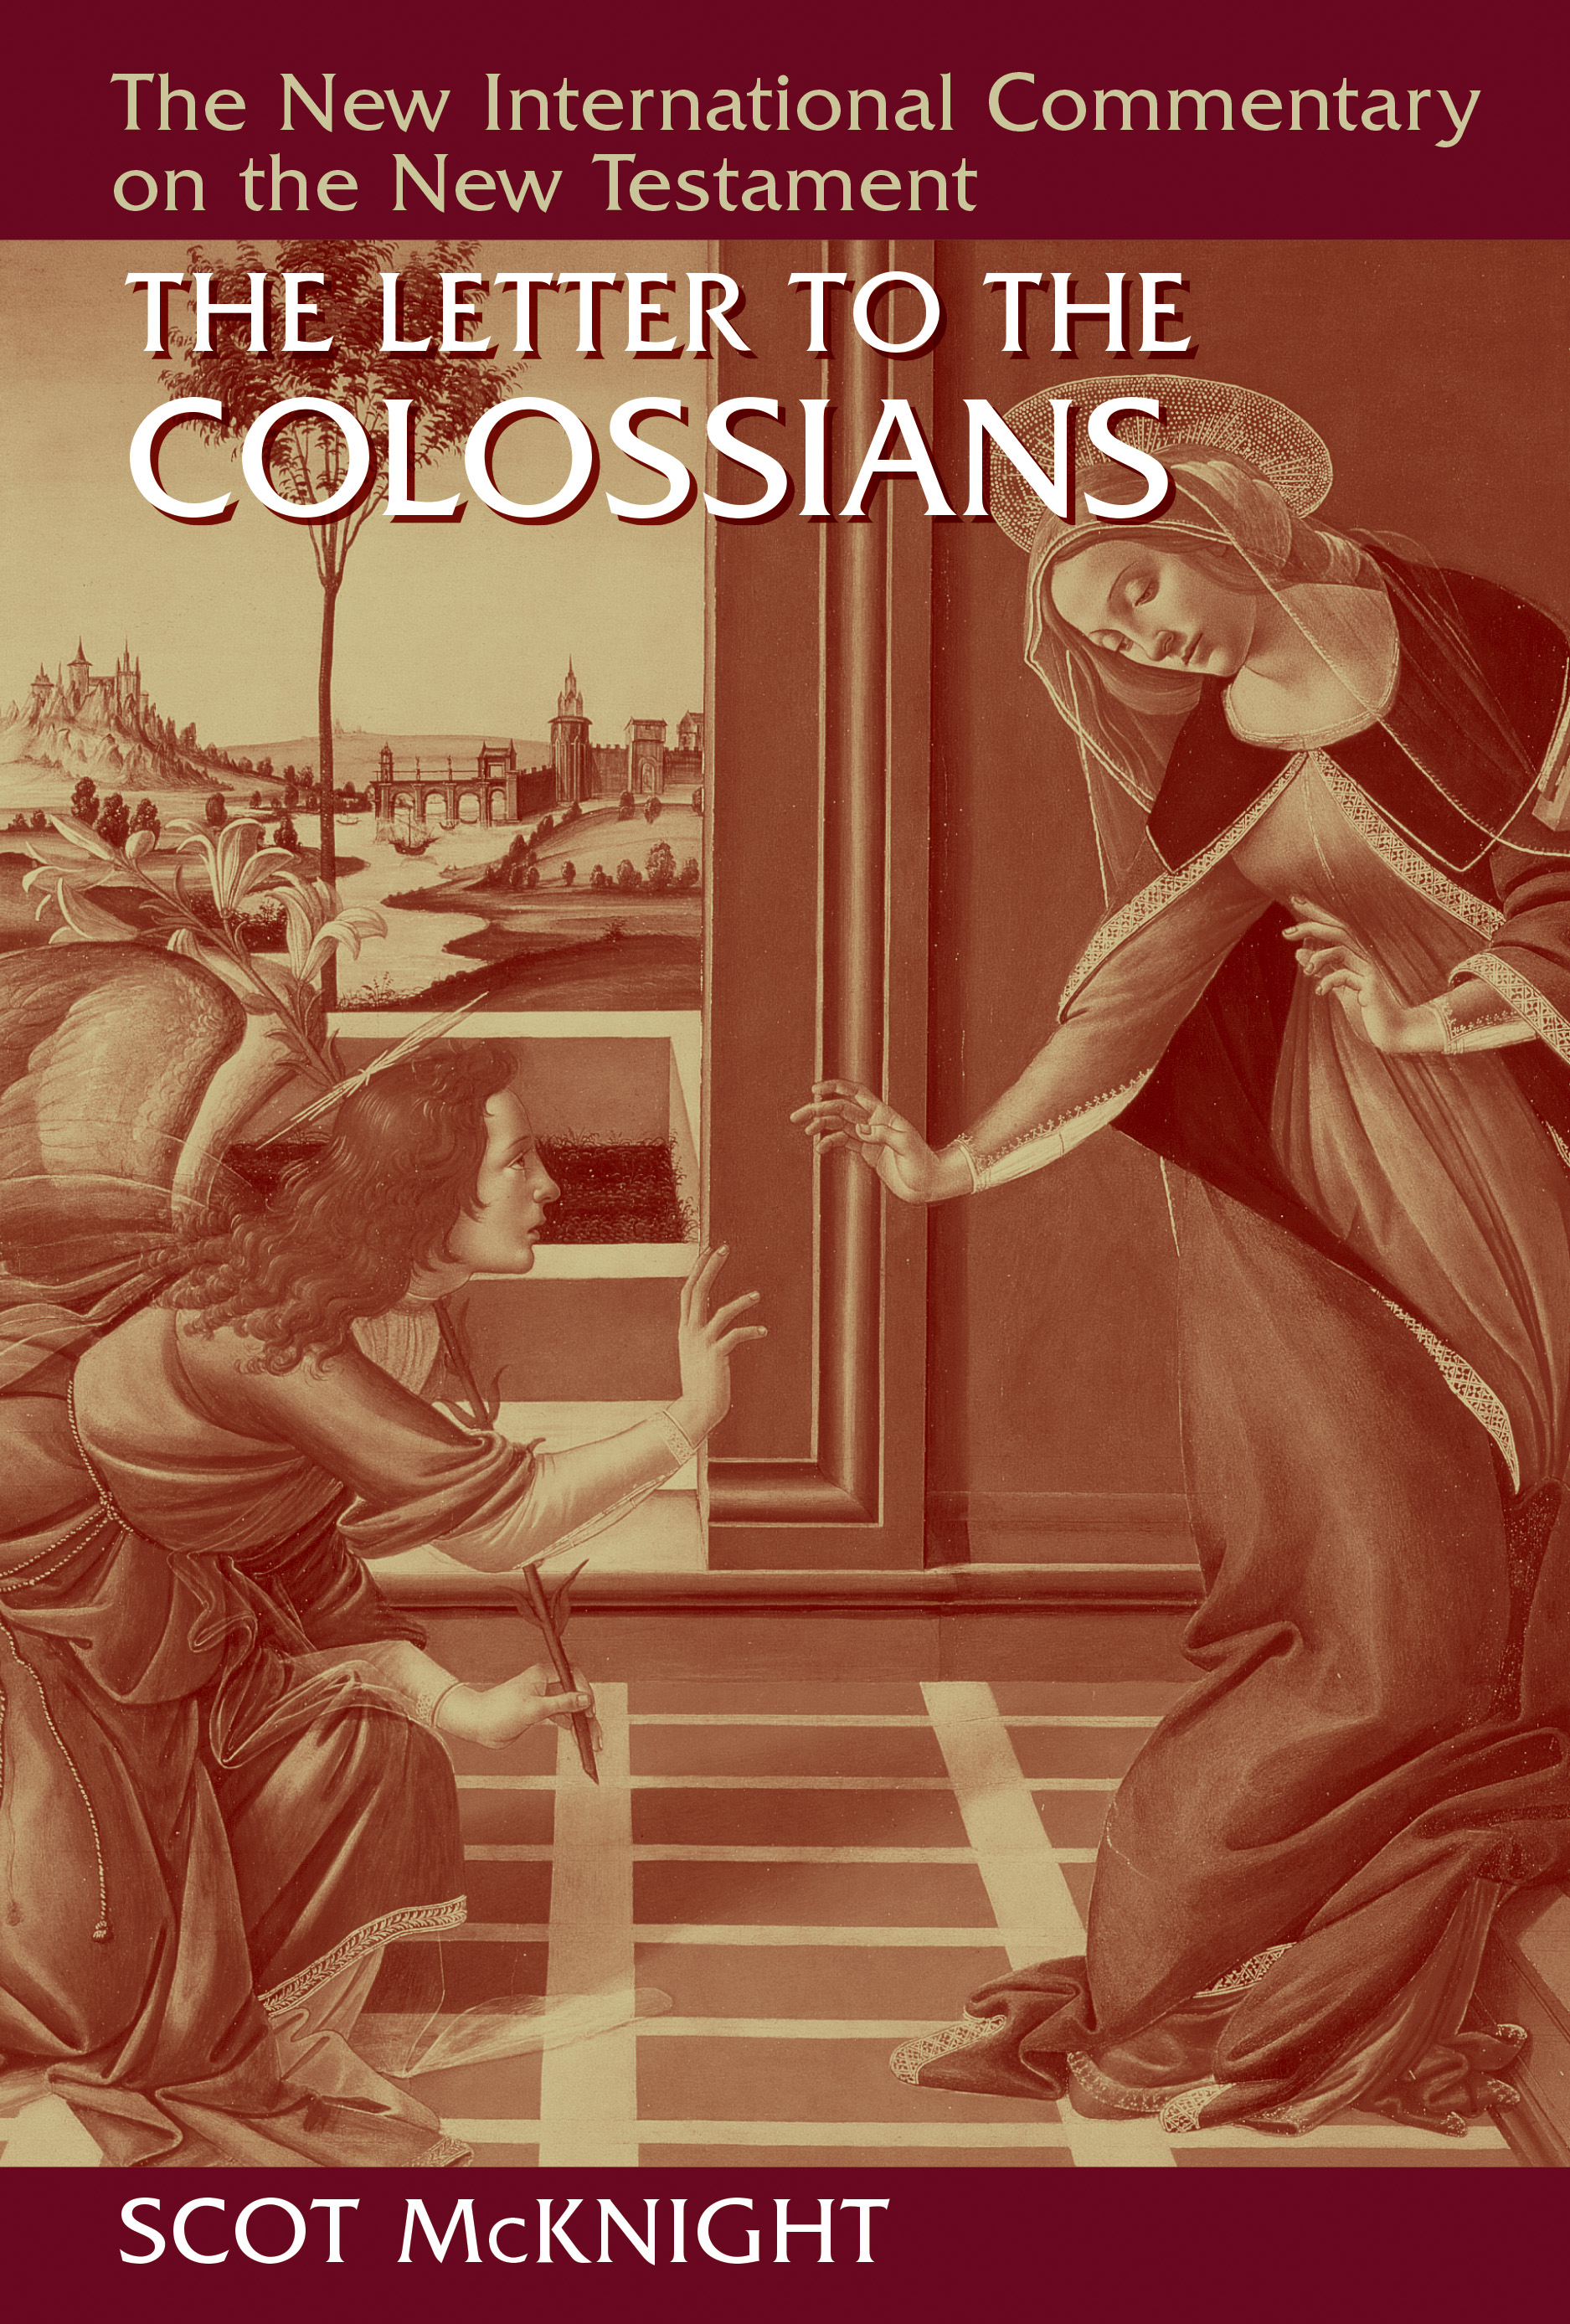 Book Review: Scot McKnight, Colossians (NICNT)